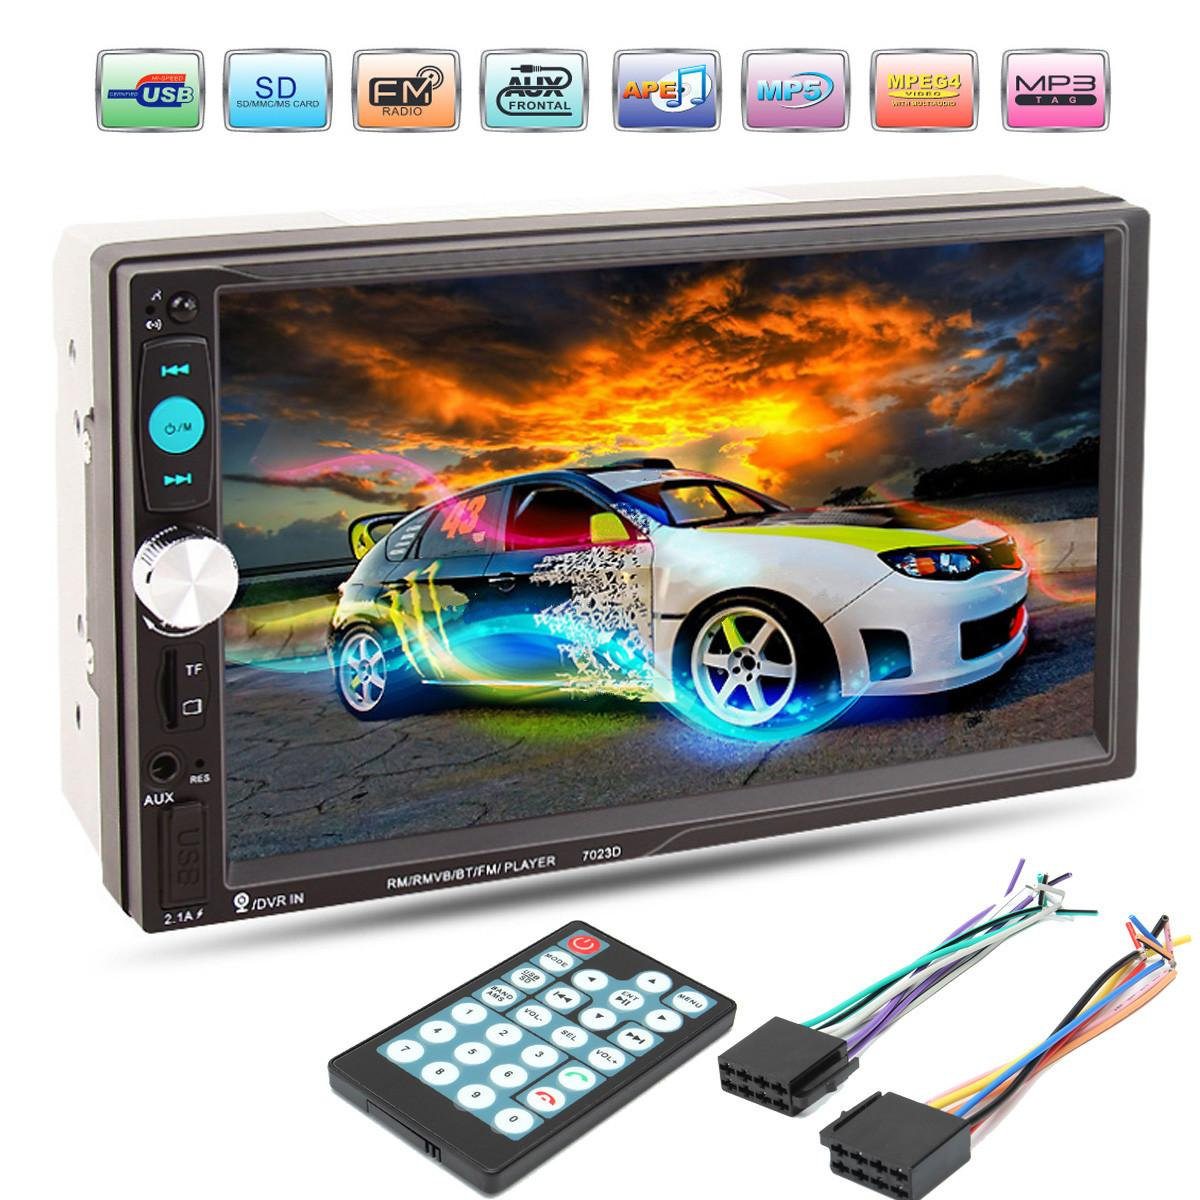 7 inch bluetooth HD Car MP5 Player Reader Radio <font><b>7023D</b></font> 2DIN Fast Charge with Camera Car Stereo Audio MP5 Player image